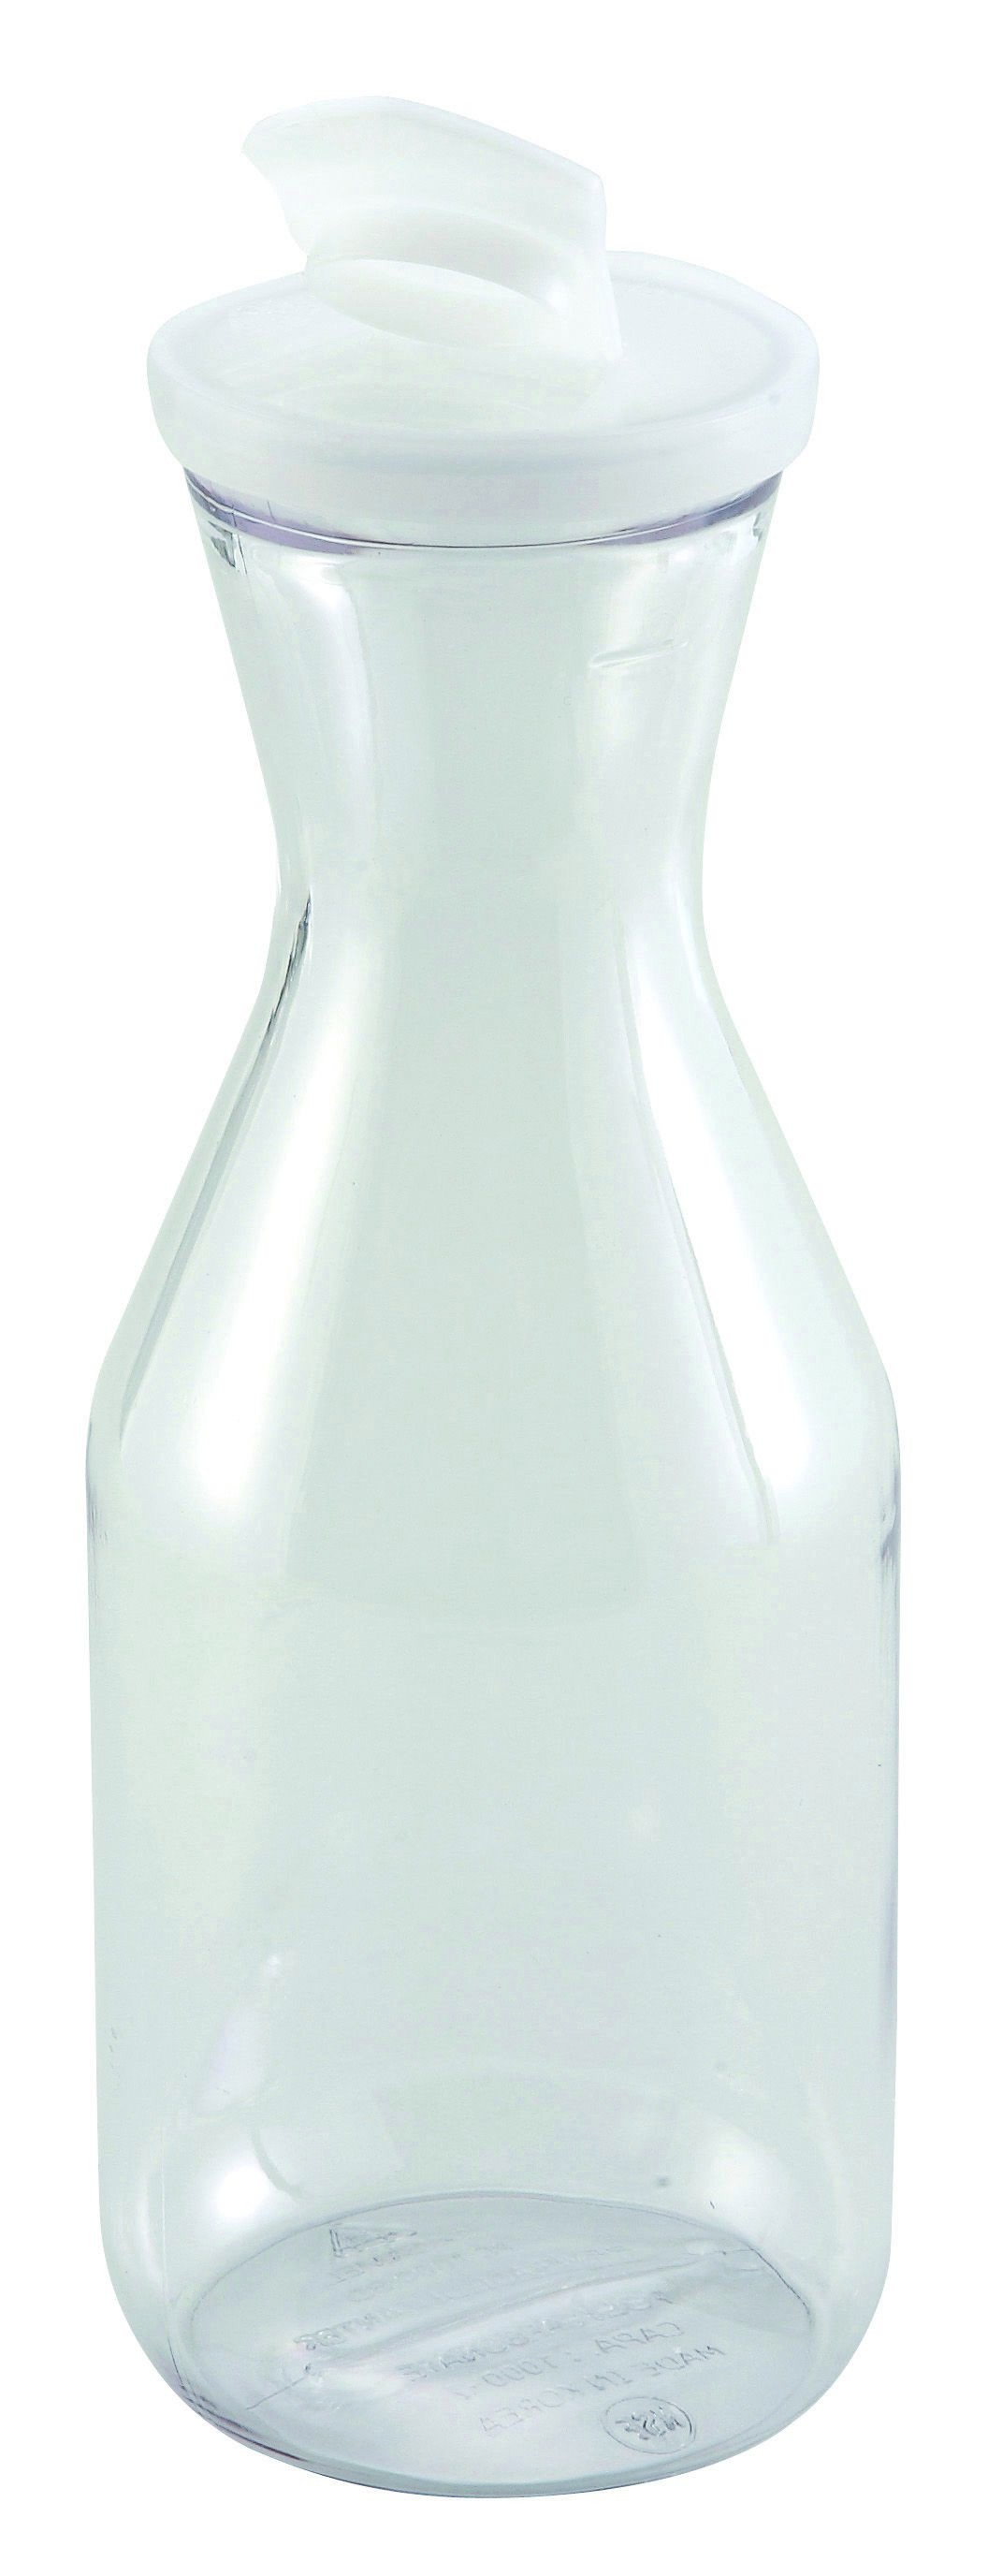 Winco PDT-05 Polycarbonate Decanter with Lid 0.5L